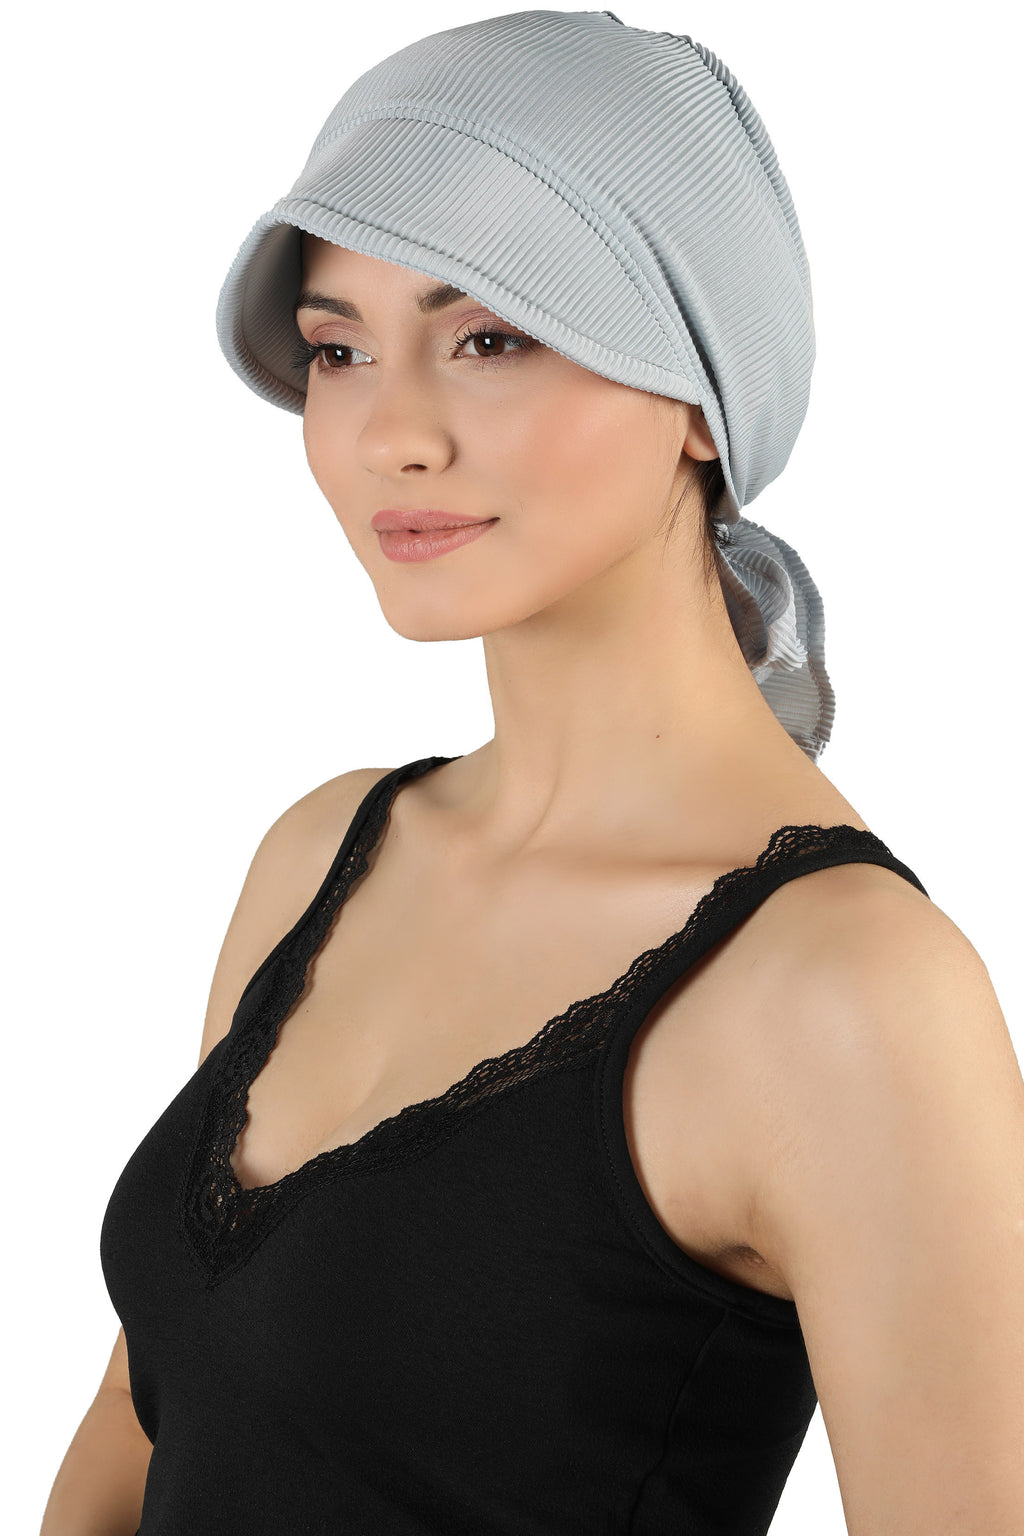 Tie Back Casual Pretty Hat - Light Grey